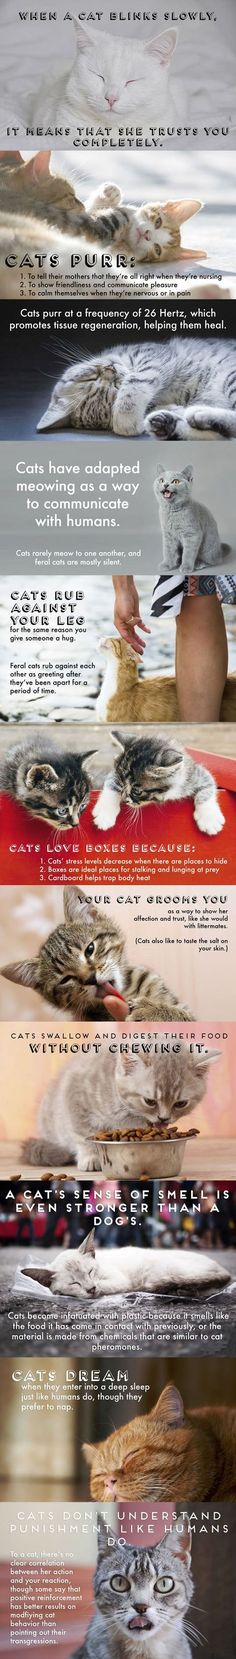 Interesting cat facts